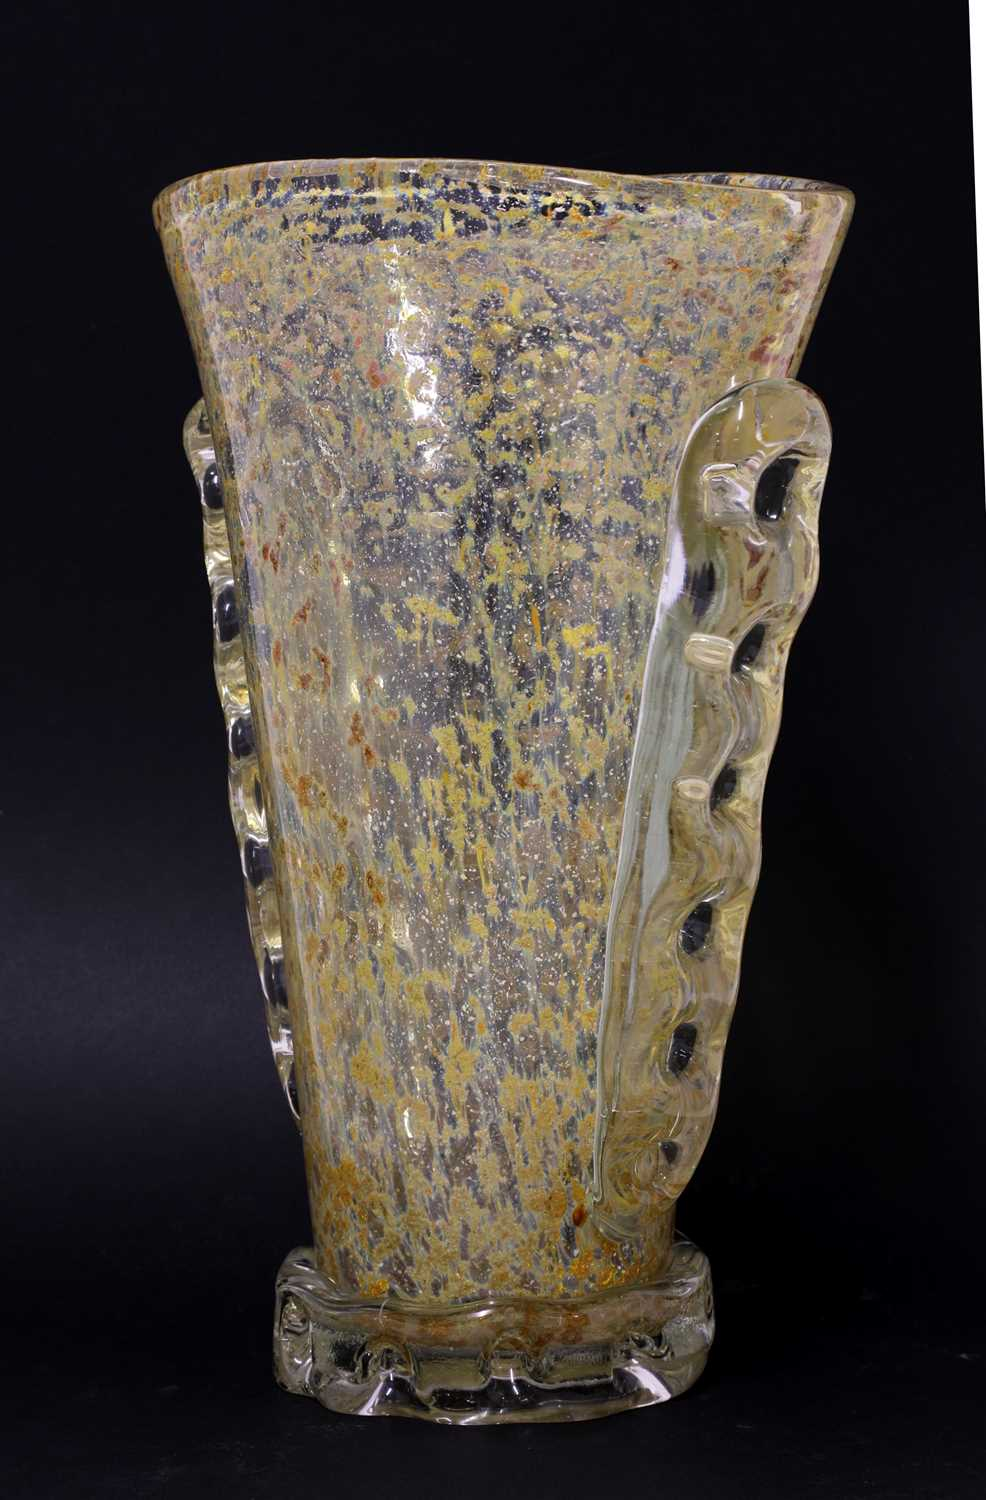 A Murano glass vase, - Image 6 of 8